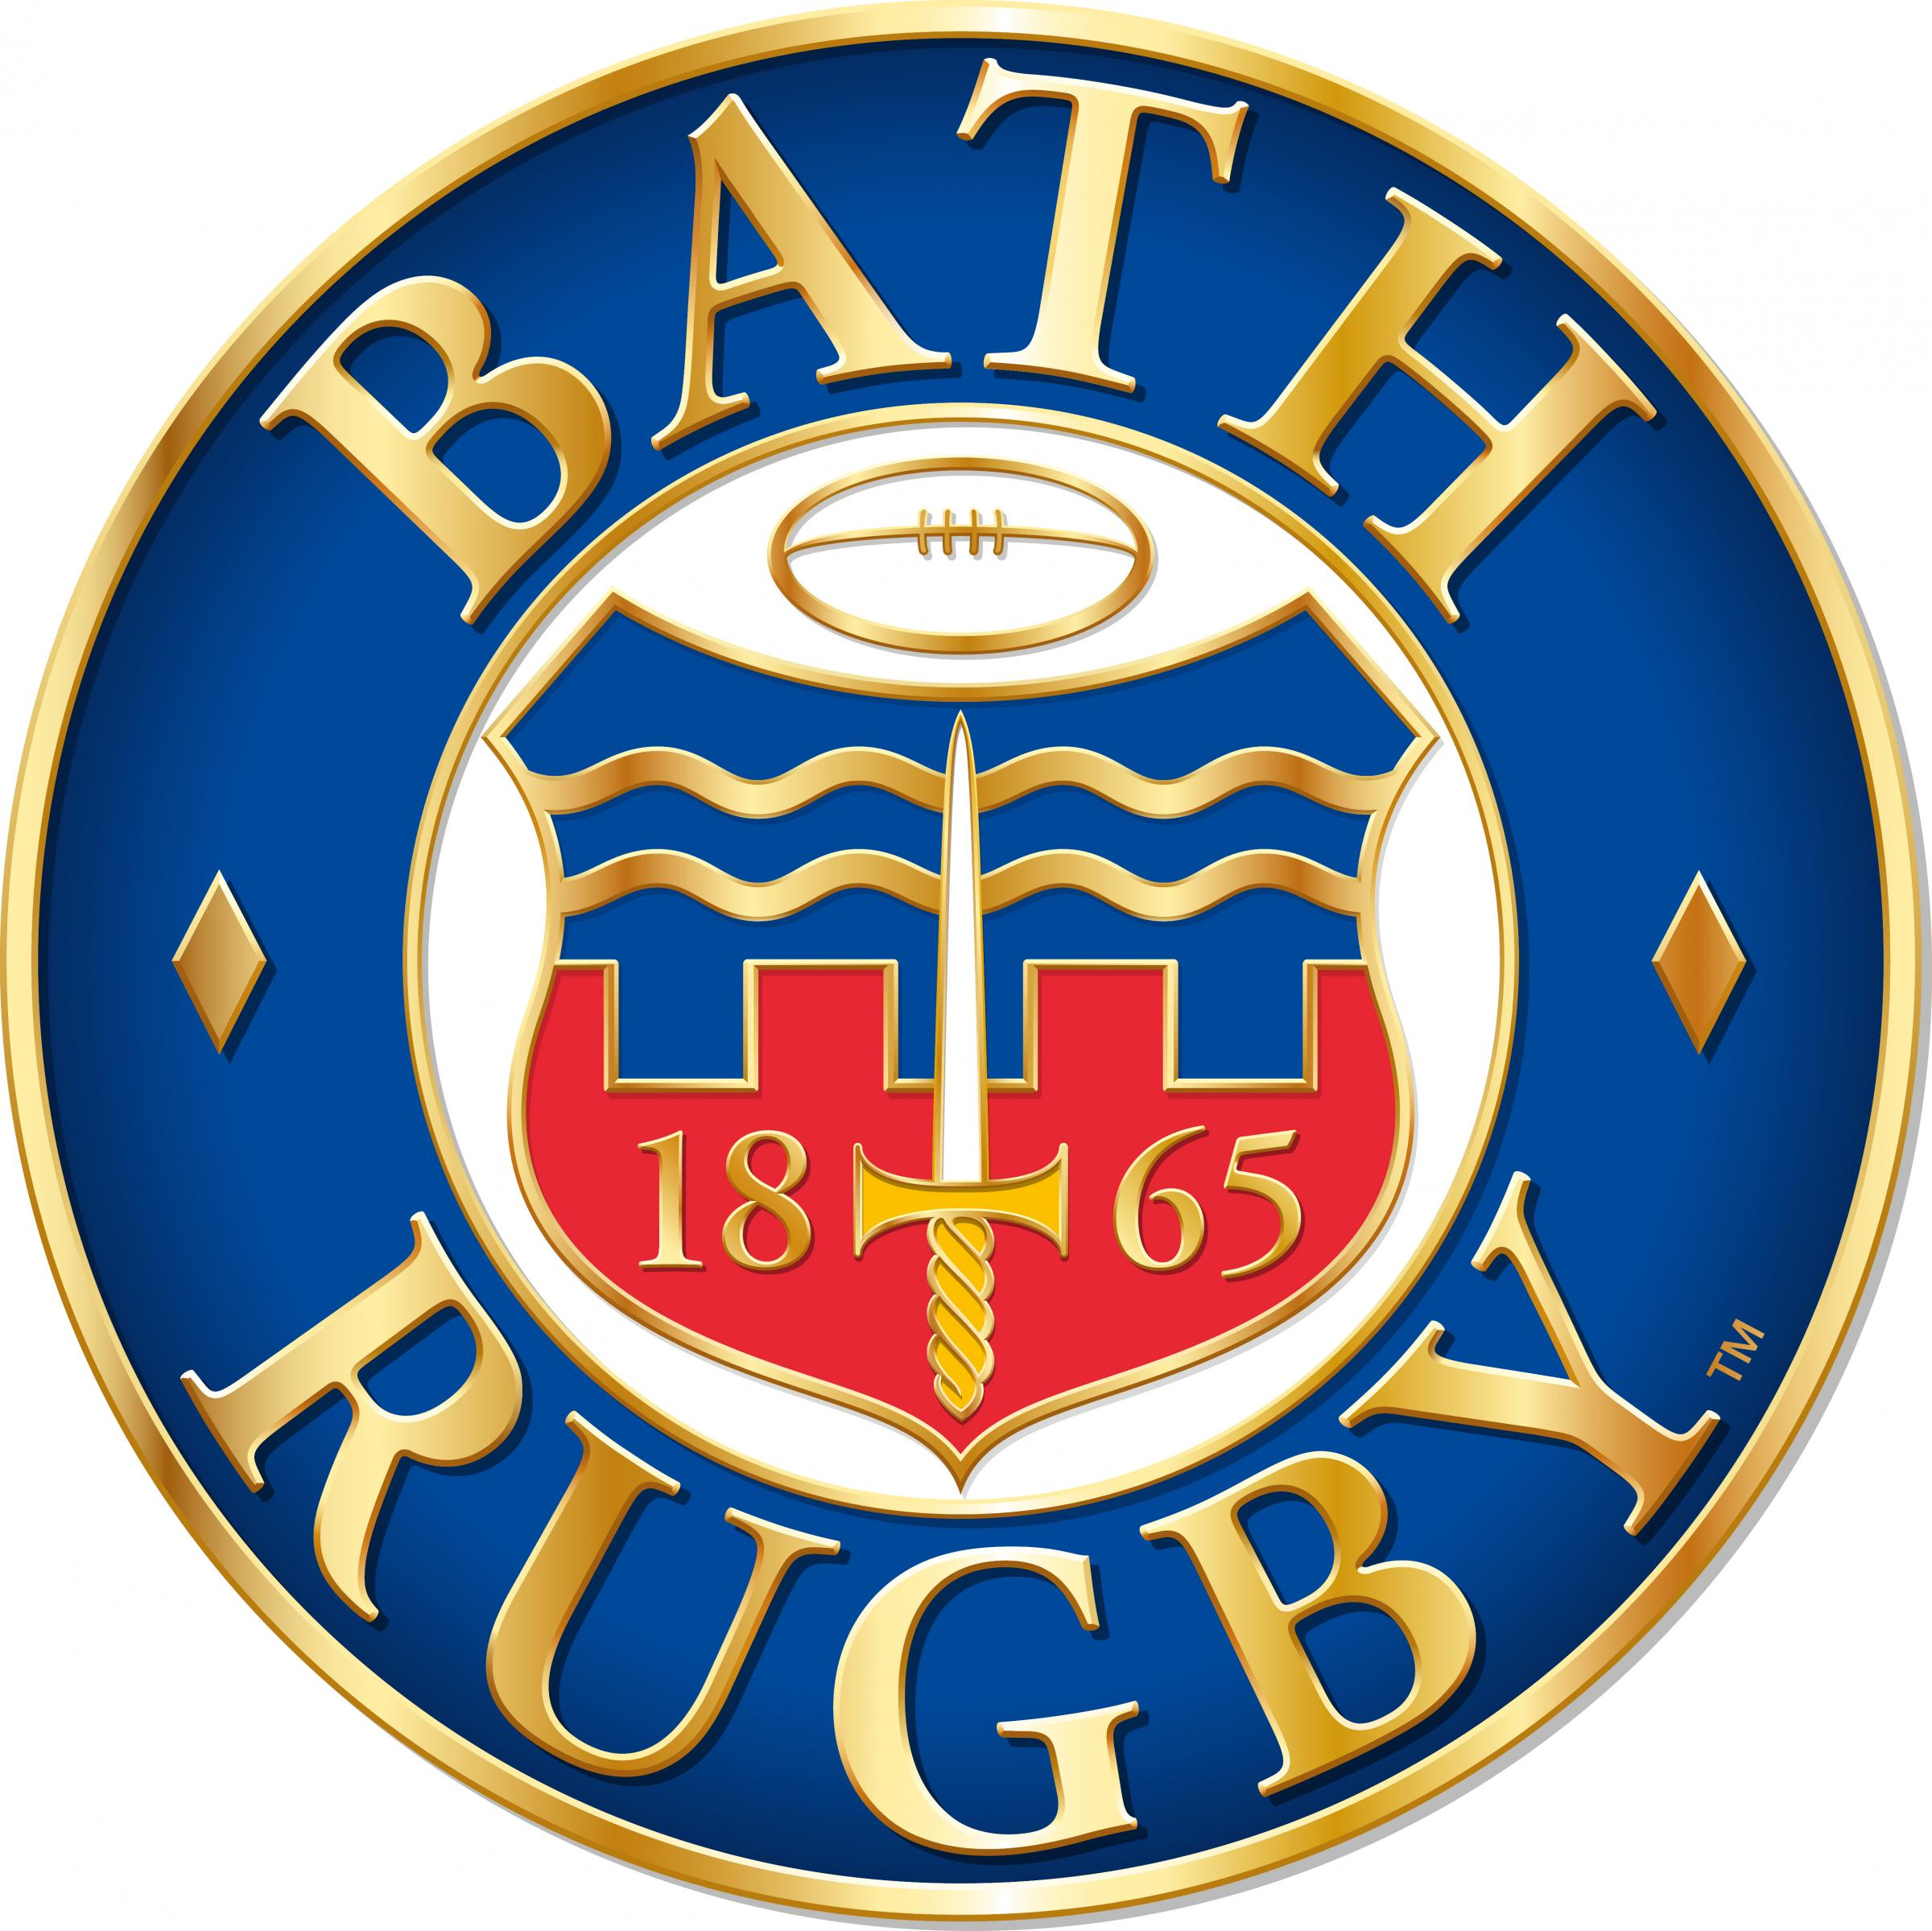 RUGBY: England duo return for Bath's trip to Irish